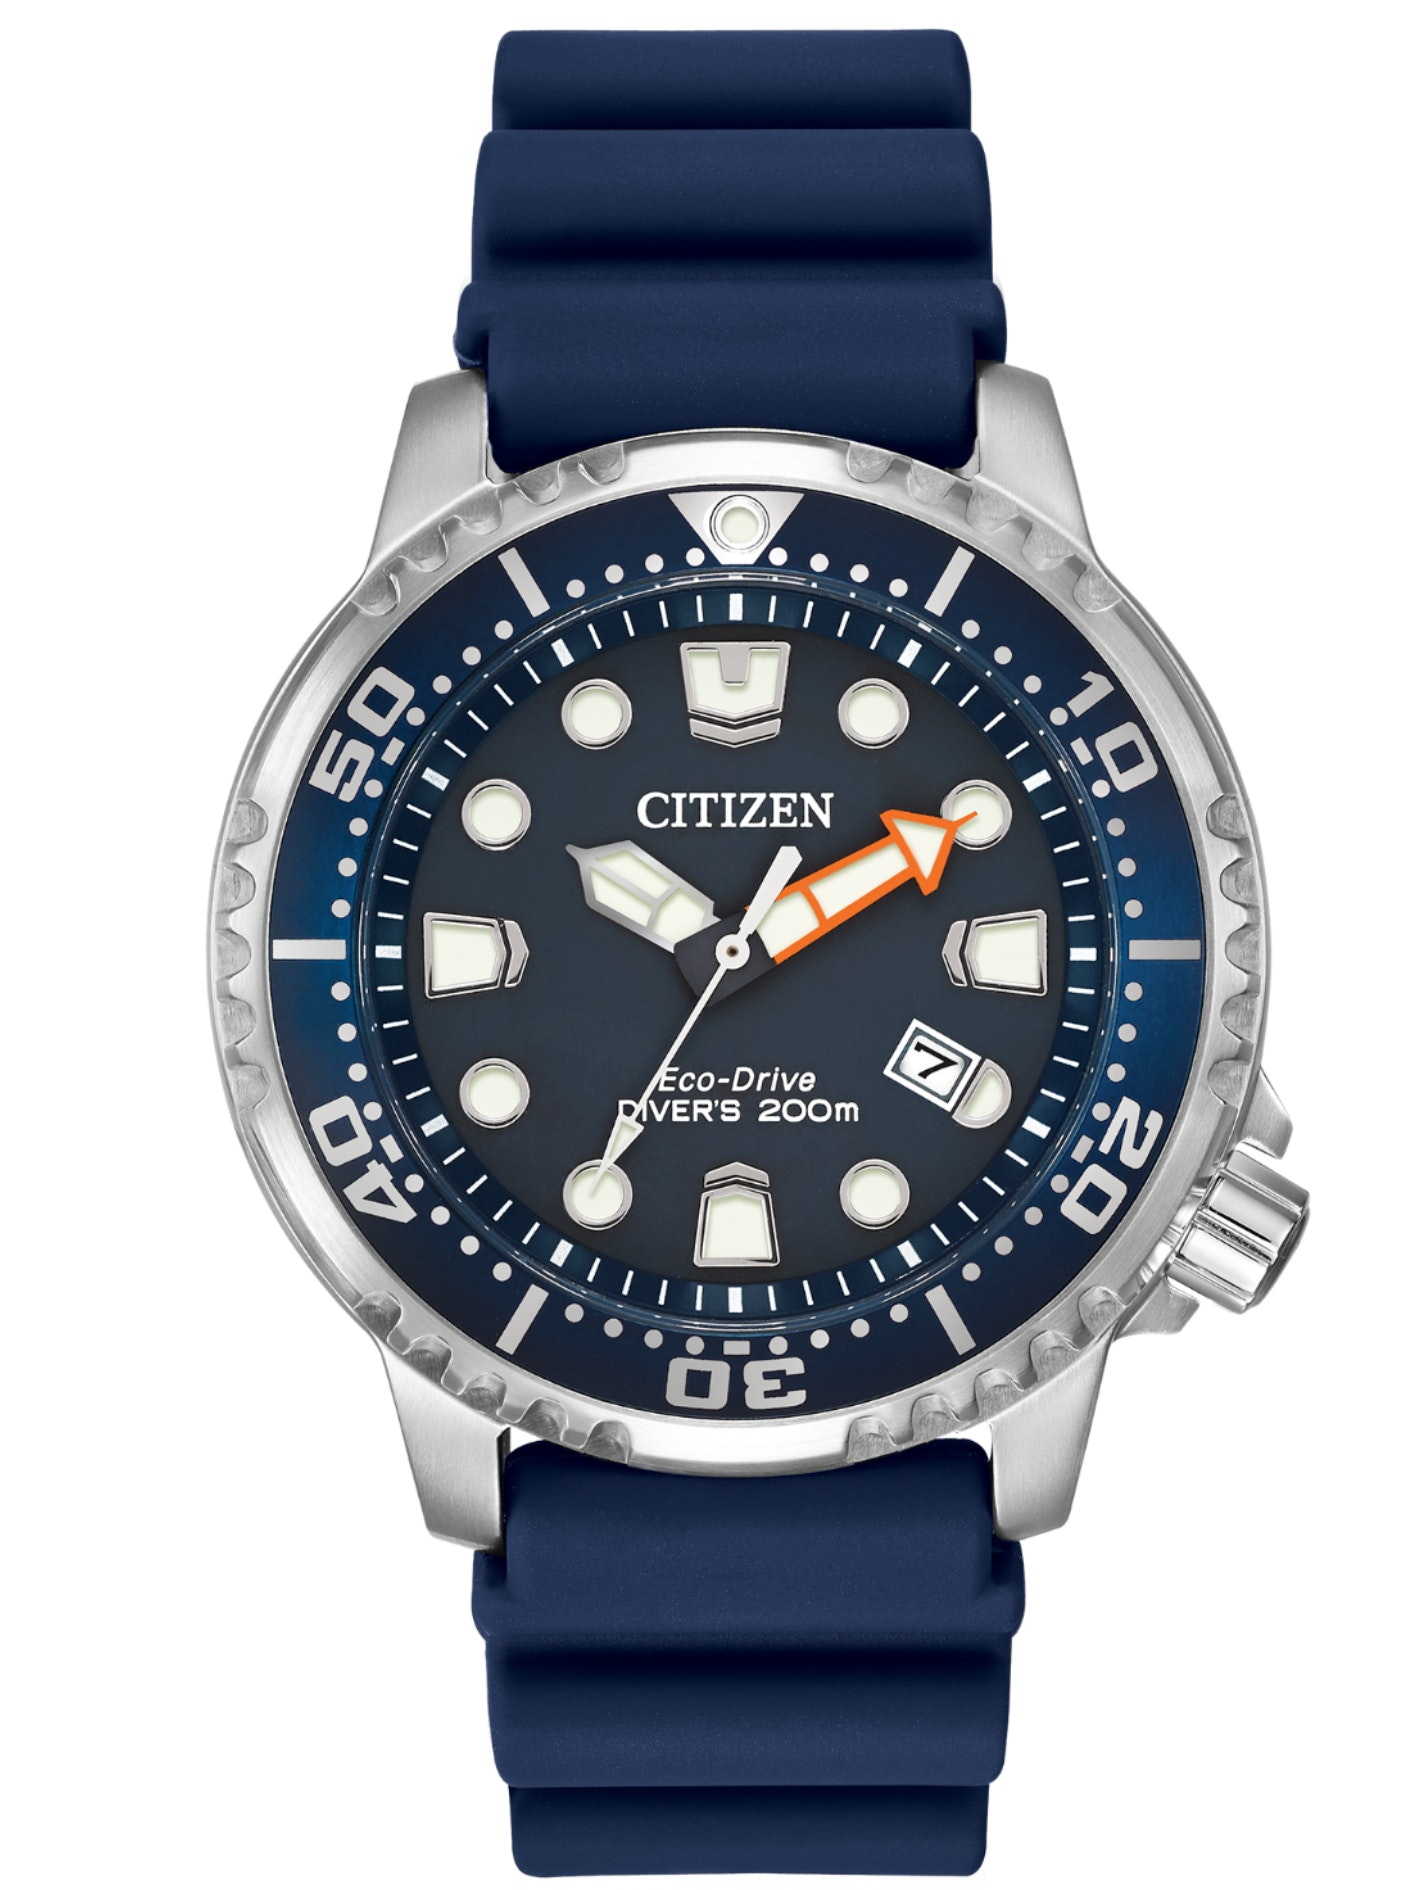 Promaster Diver-Men's Eco-Drive Blue Strap Diver Watch | CitizenSlice 1Arrow poi